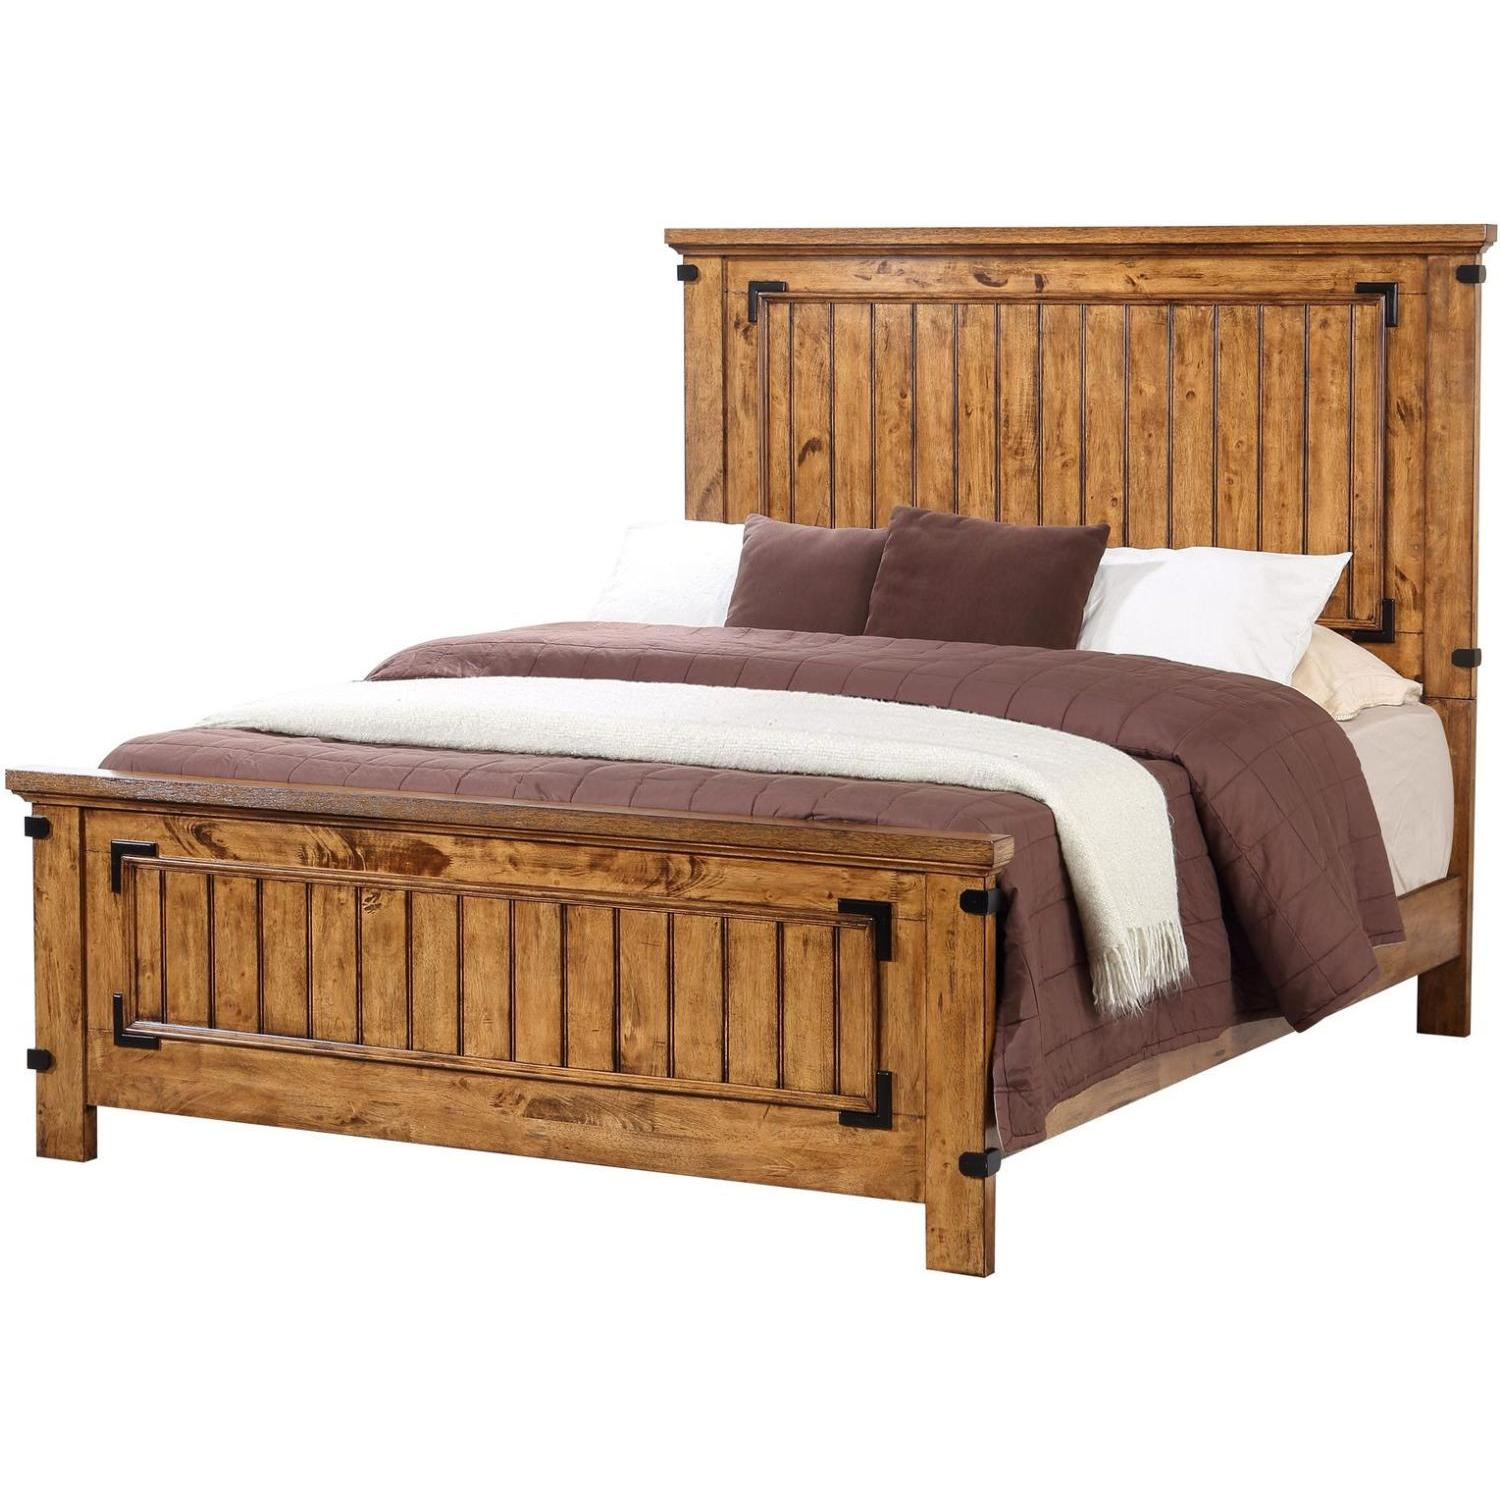 Rustic Style King Bed in Warm Honey Brown Finish - image-0